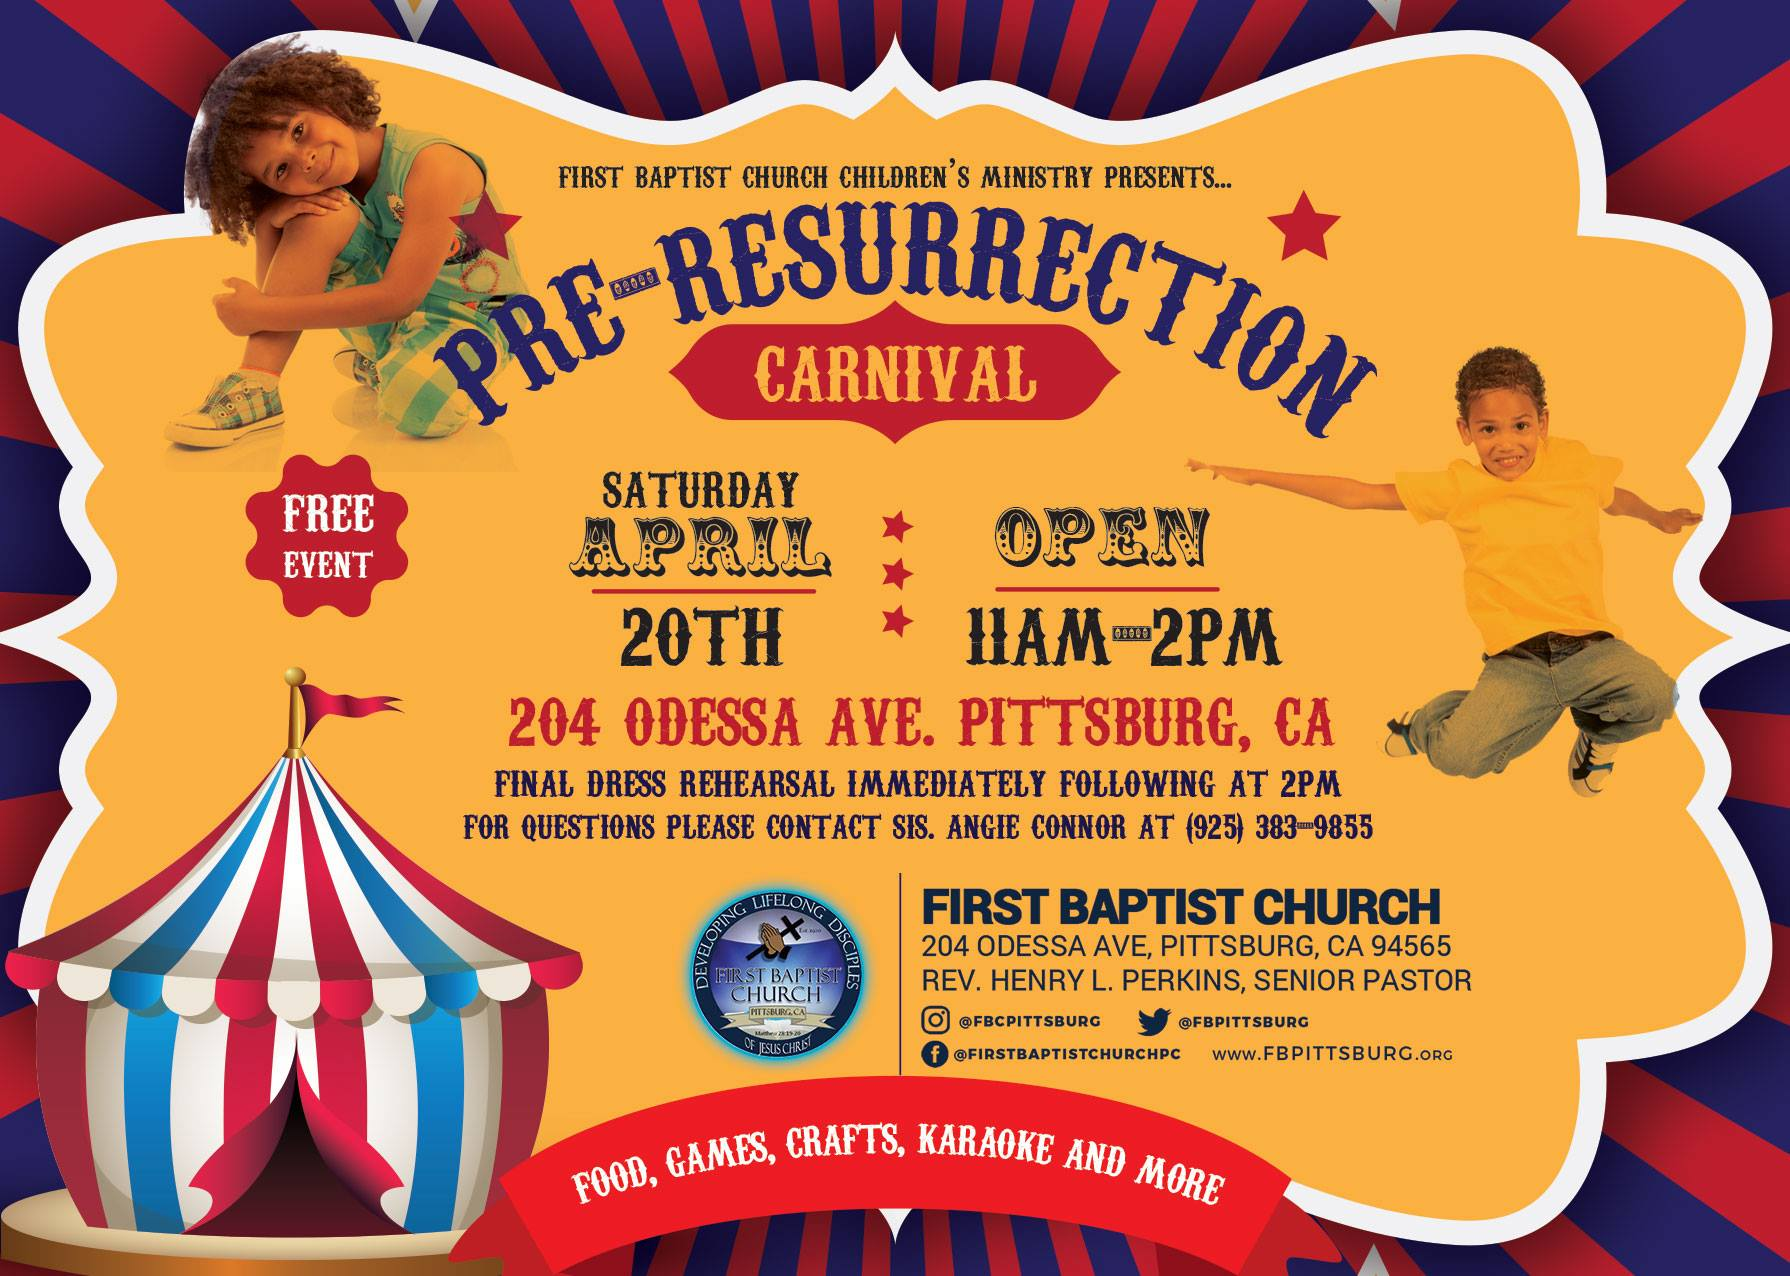 First Baptist Church Pre Easter Carnival 2019